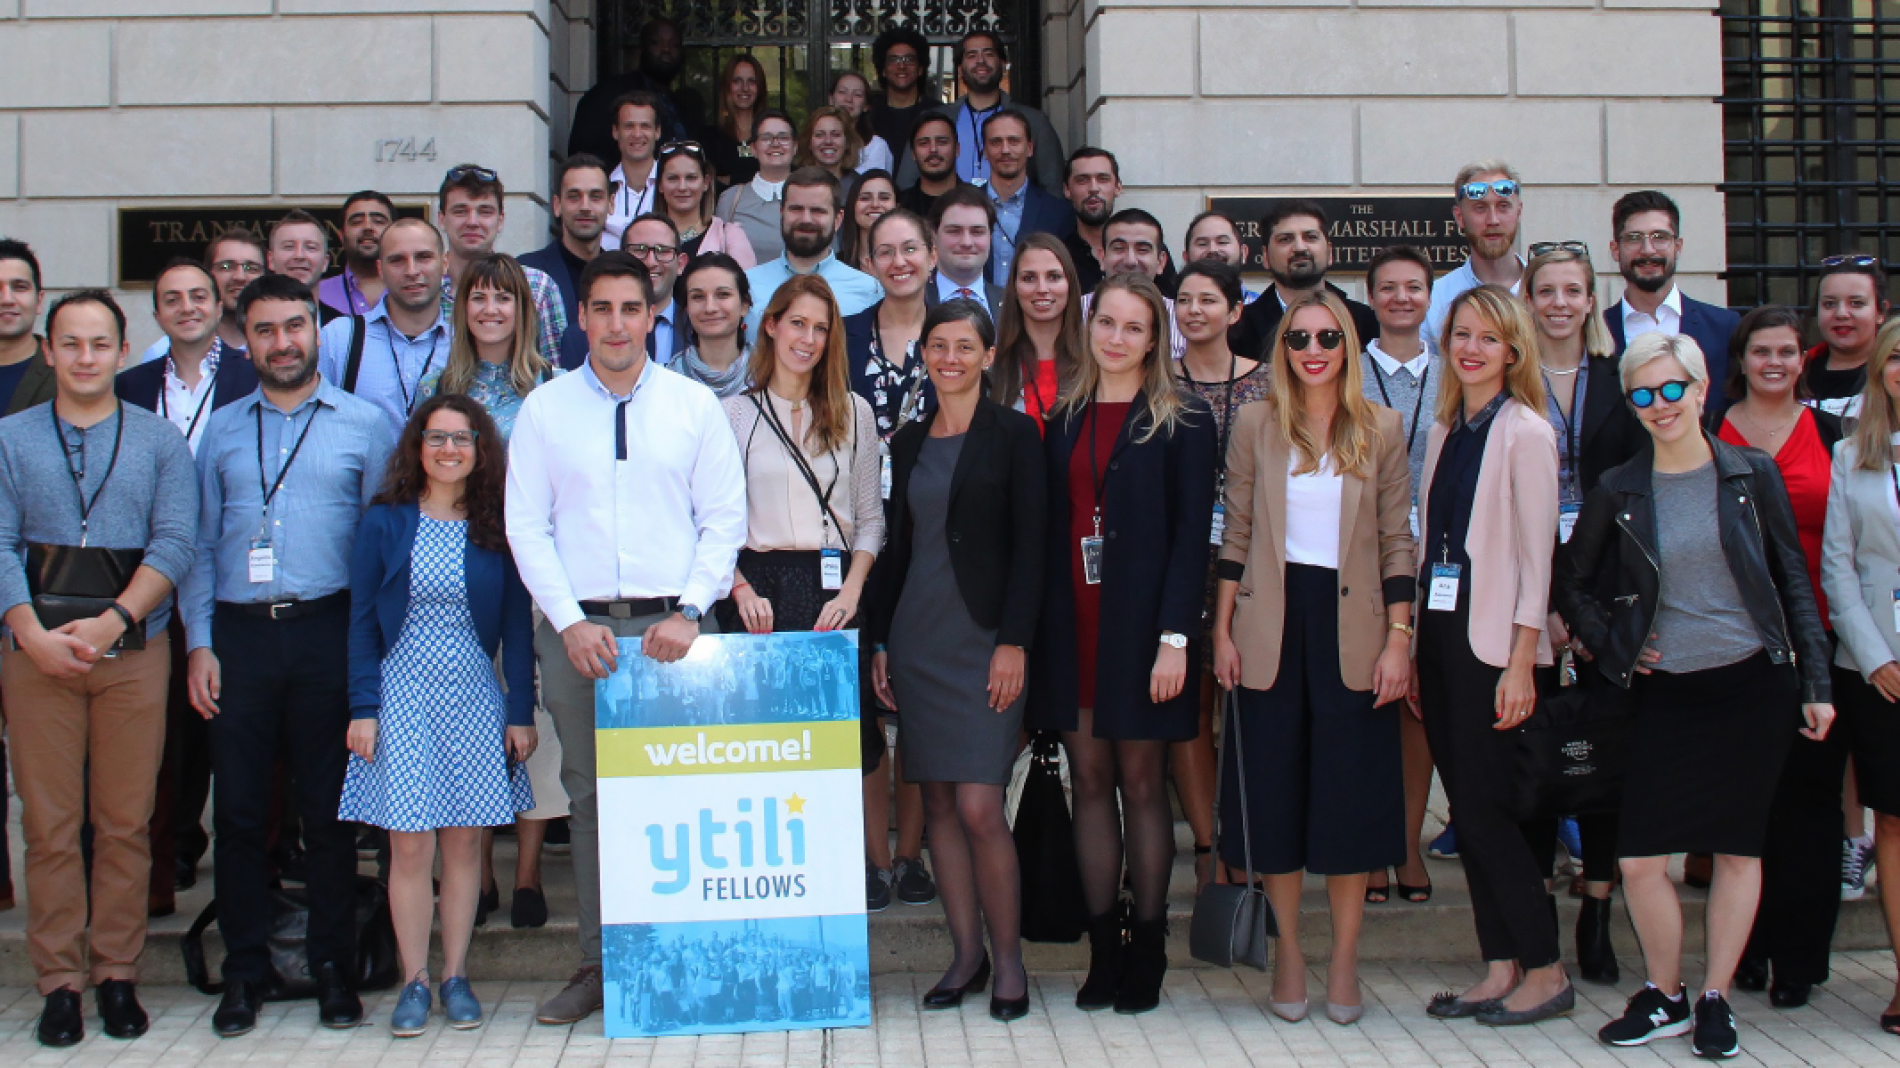 Fellows from the YTILI standing together on steps of a building.